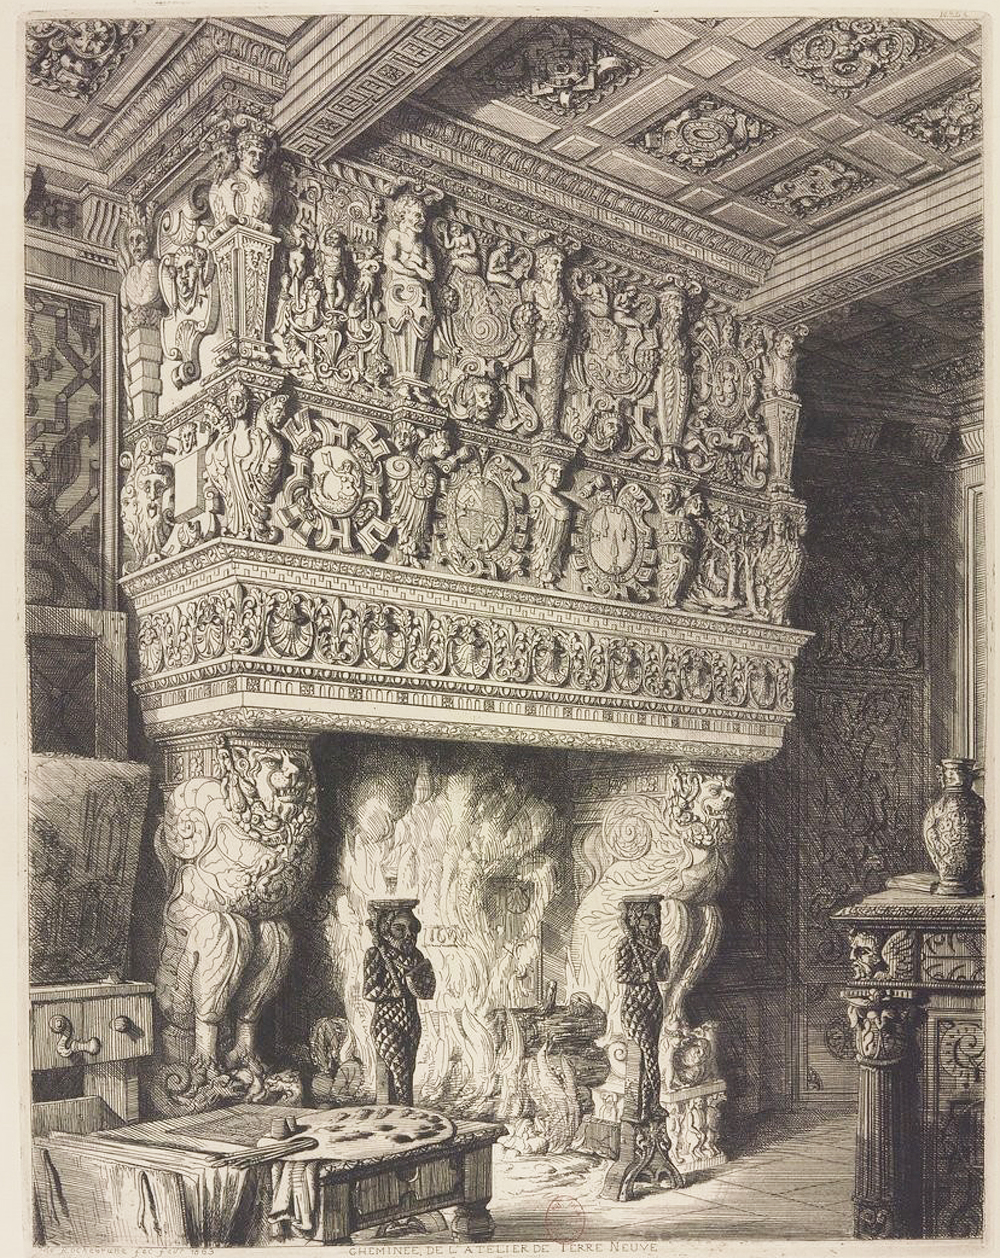 History of alternative energy: Fireplace tech_dancer